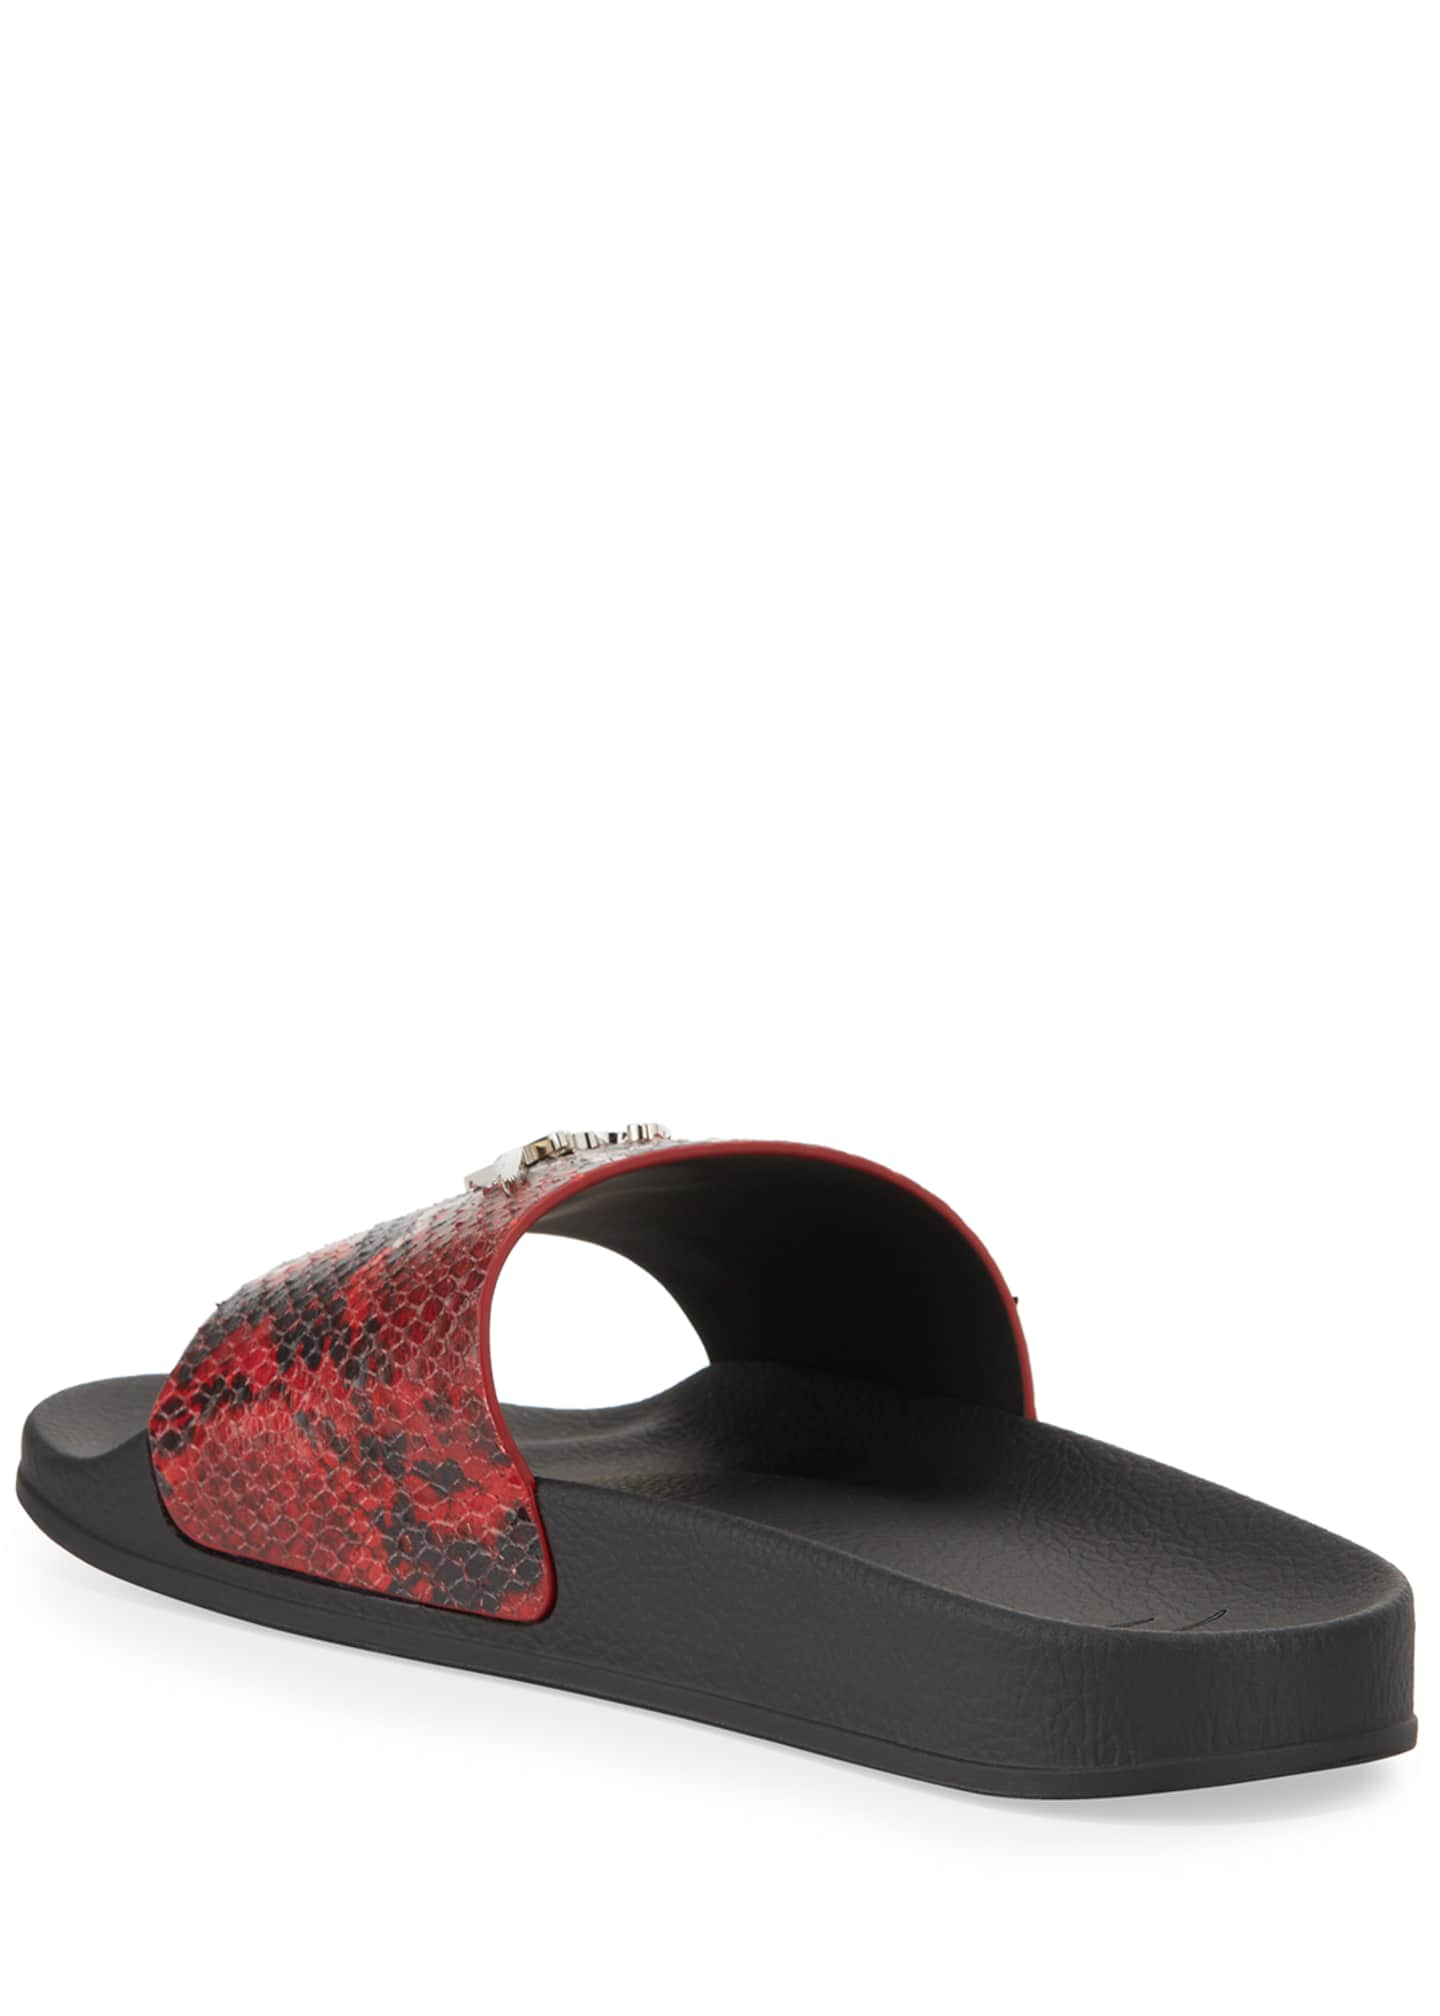 Image 4 of 4: Men's Snake-Embossed Leather Logo Slide Sandals